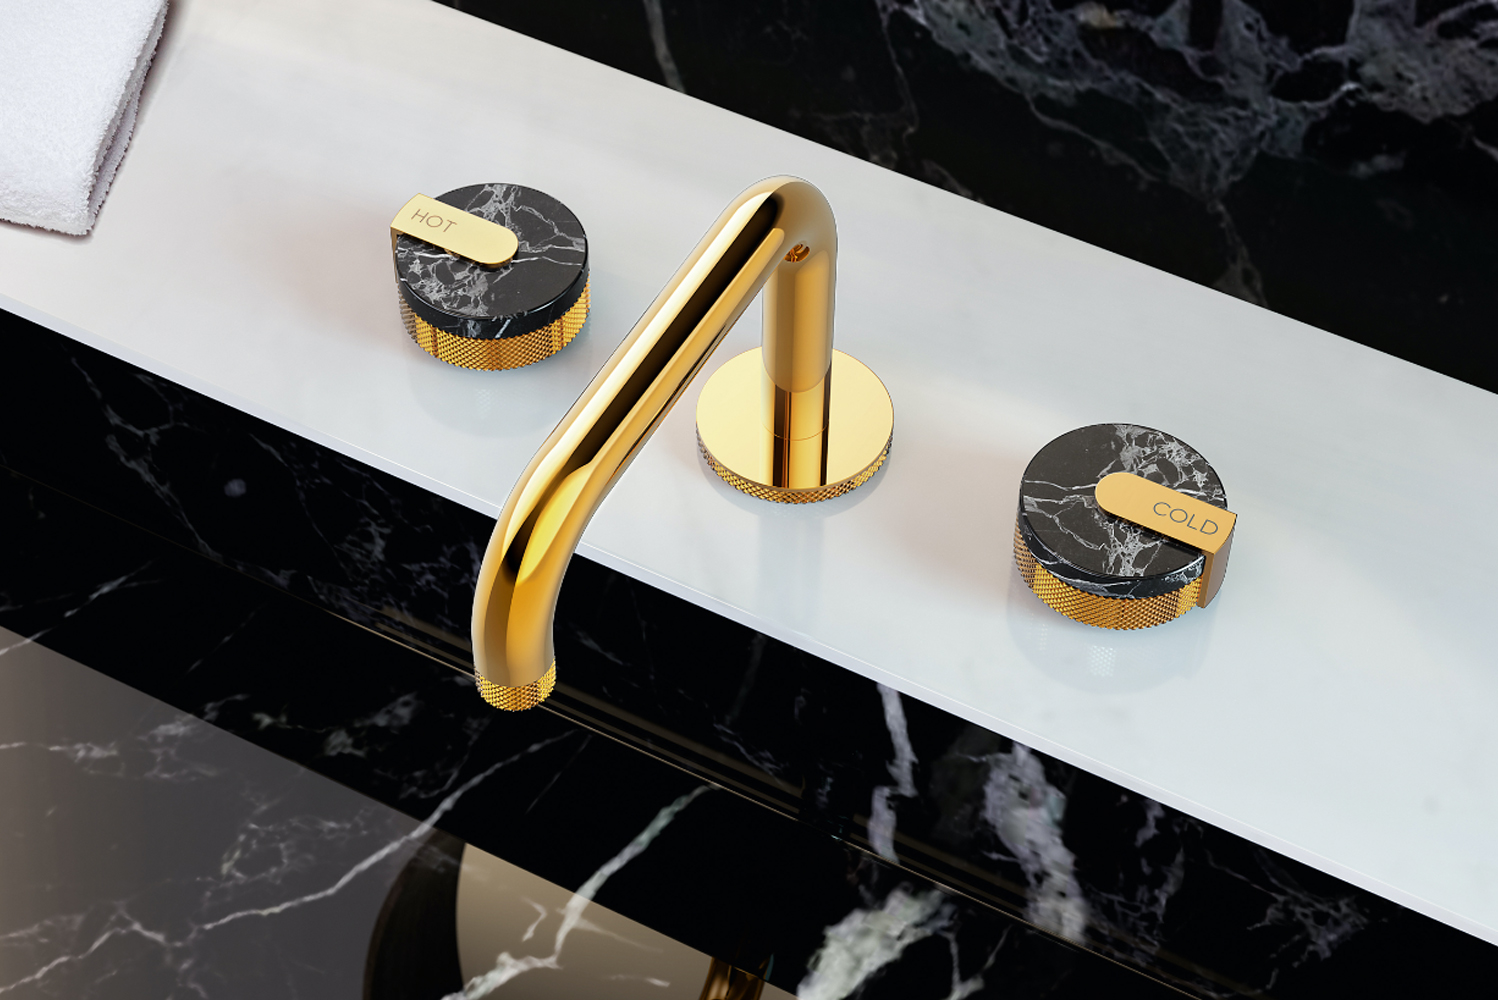 The handle covers are available in three marble finishes produced in Italy: black, white and green stone. There is also a brass option.